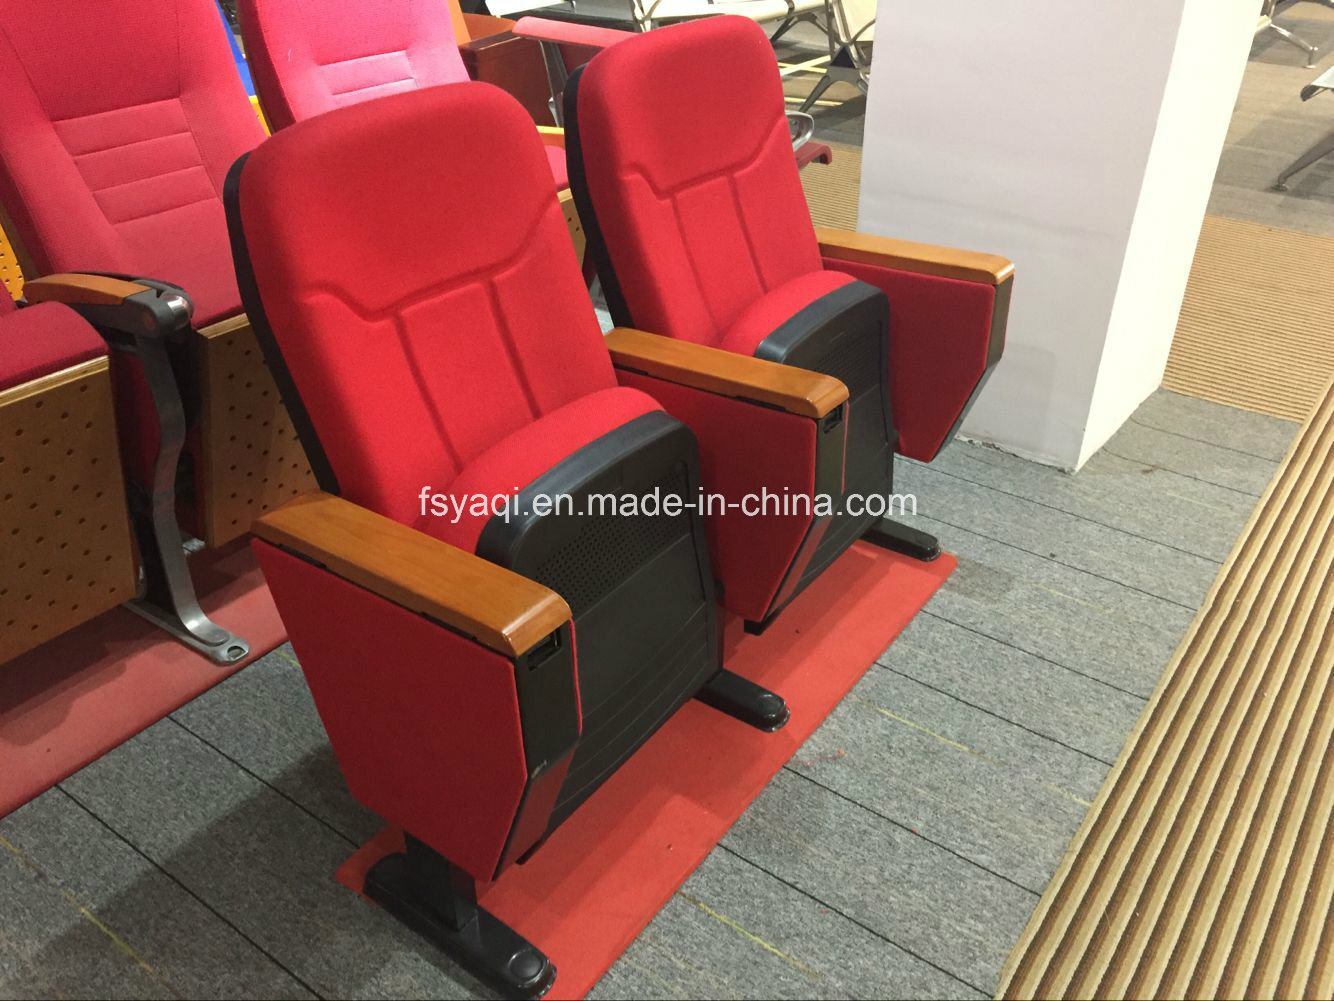 Hot Sale with Competitive Price Auditorium Chair Church Chair Auditorium Seat Auditorium Seating Cofference Chair (YA-04)